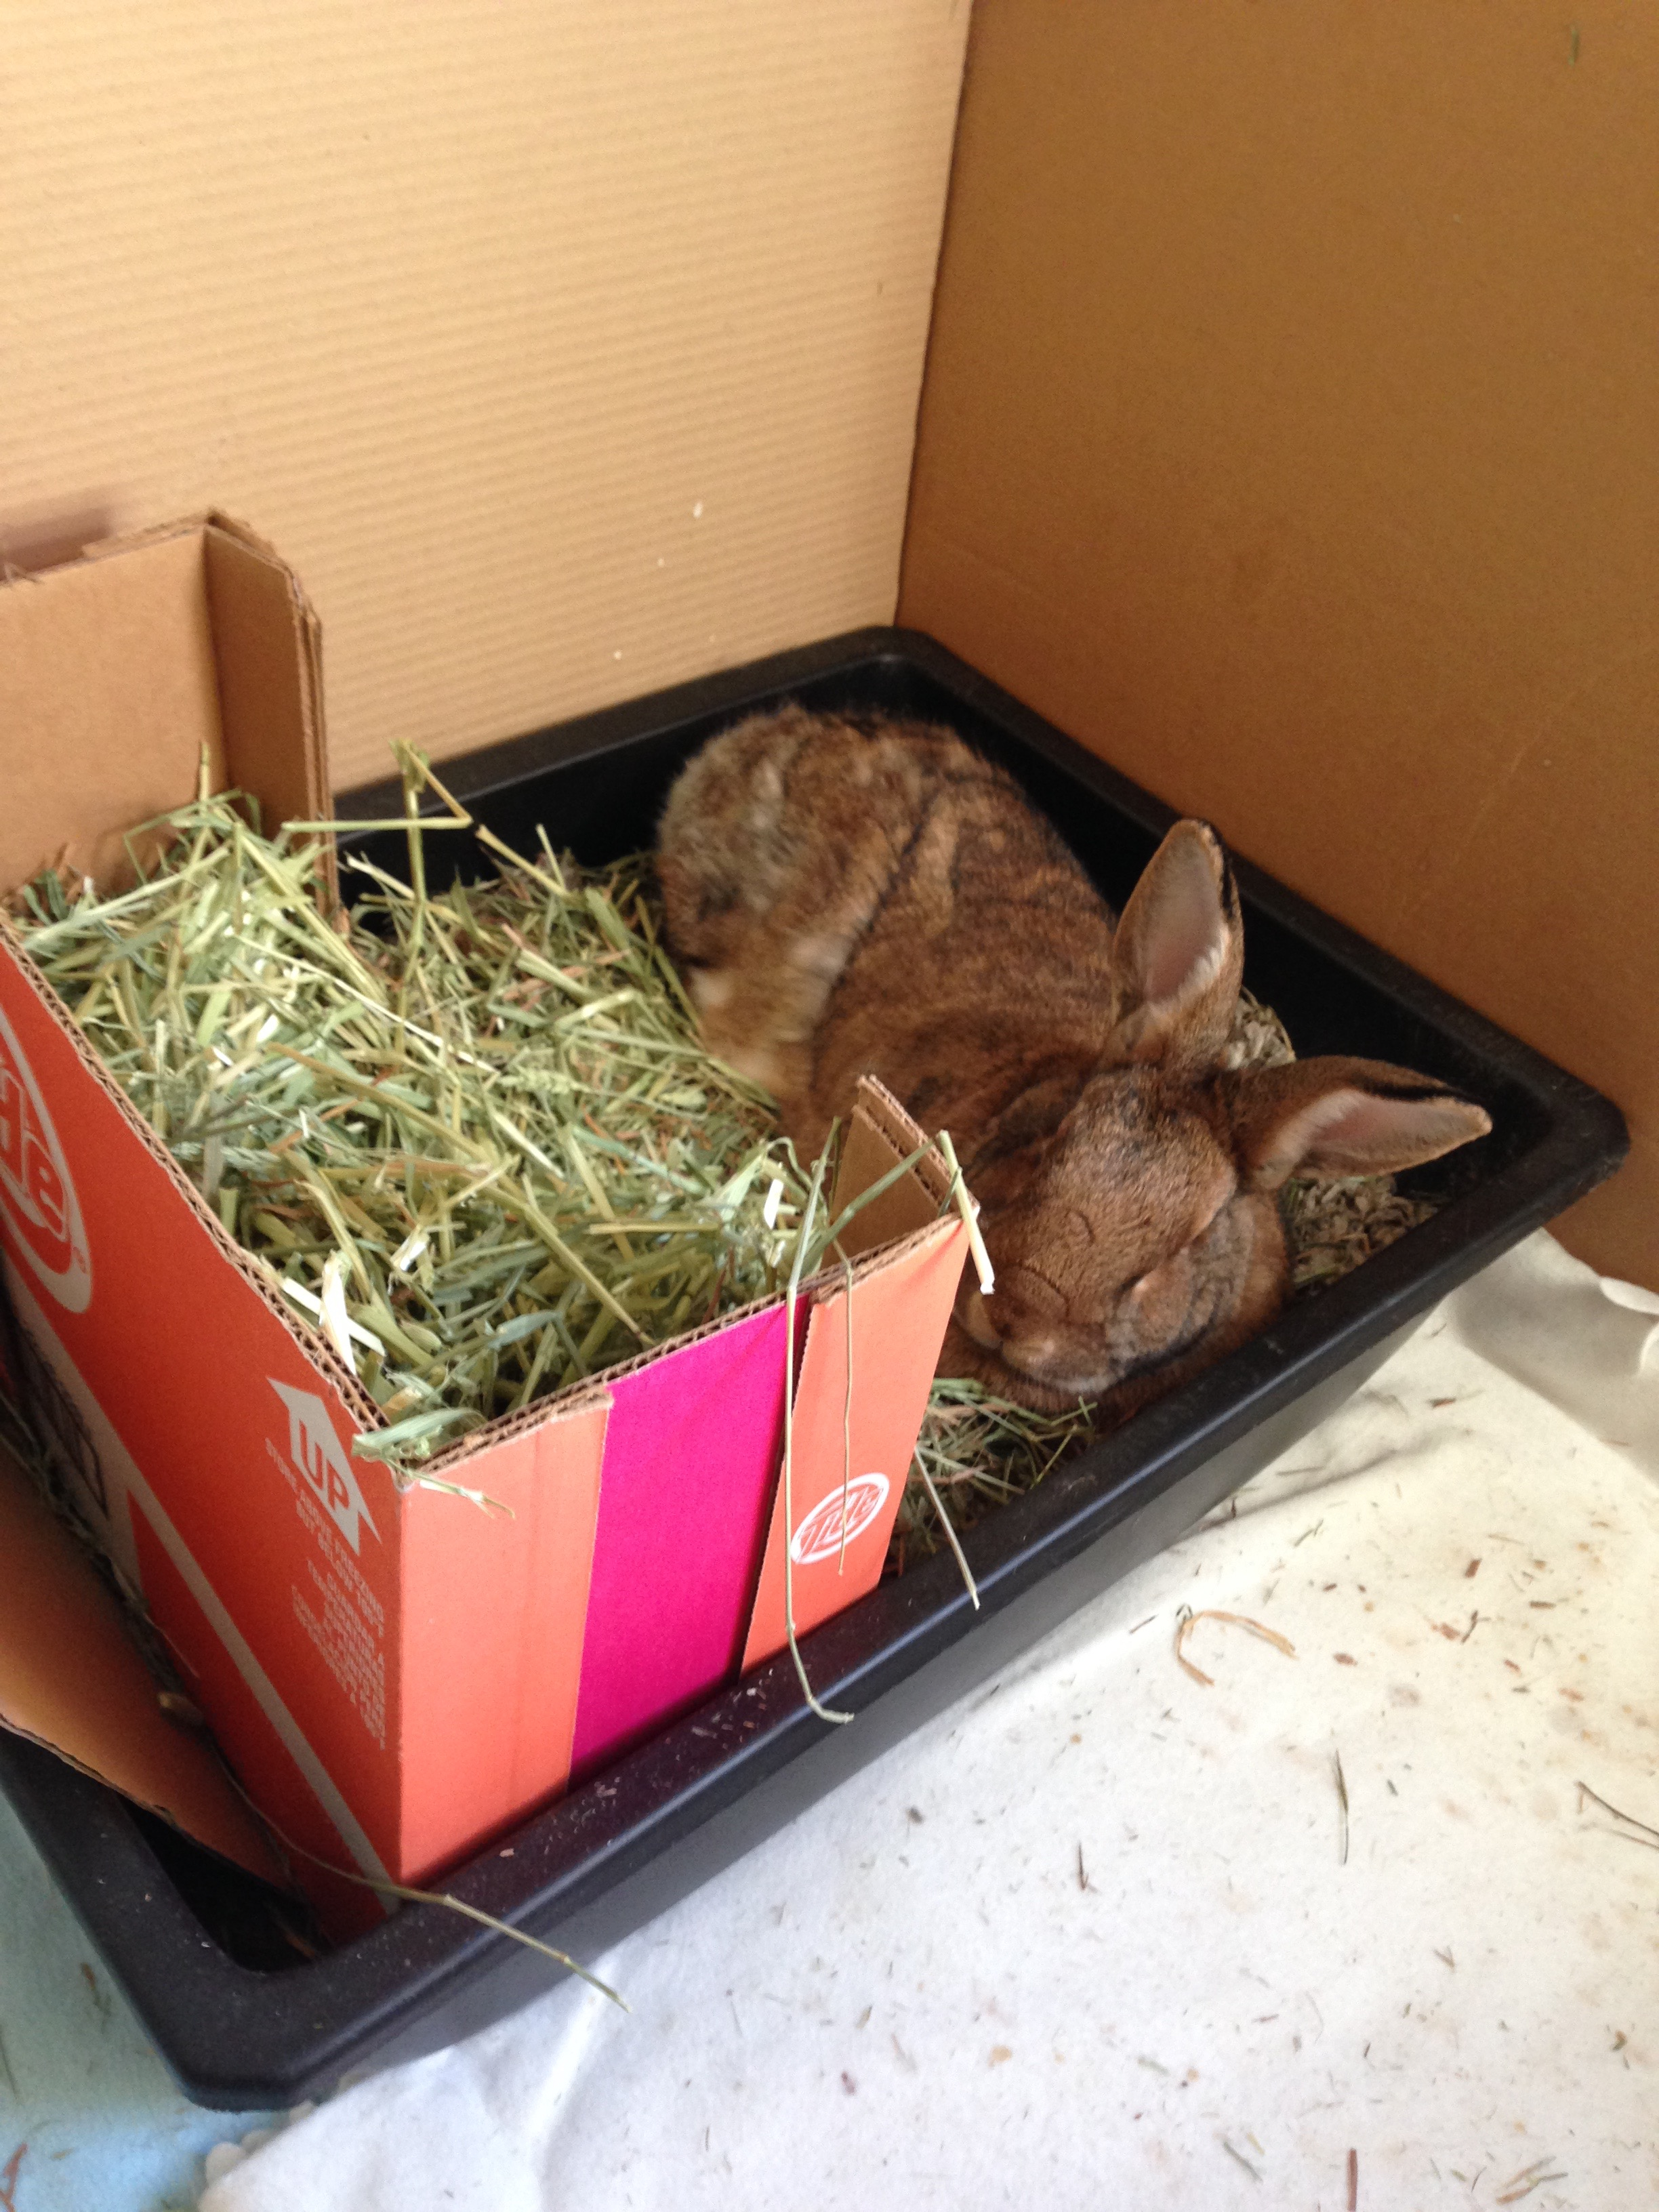 Example of litter box set up. Putting hay in the front helps them to want to use their box and maintain good habits. Some use natural paper bedding or wood pellets for the litter box part. Tiny Bunyah never relaxes in hims box, but this day, the clean paper bedding must have looked extra soft. :)  For the bigger bunnies, you can use a paint tray (as shown above).